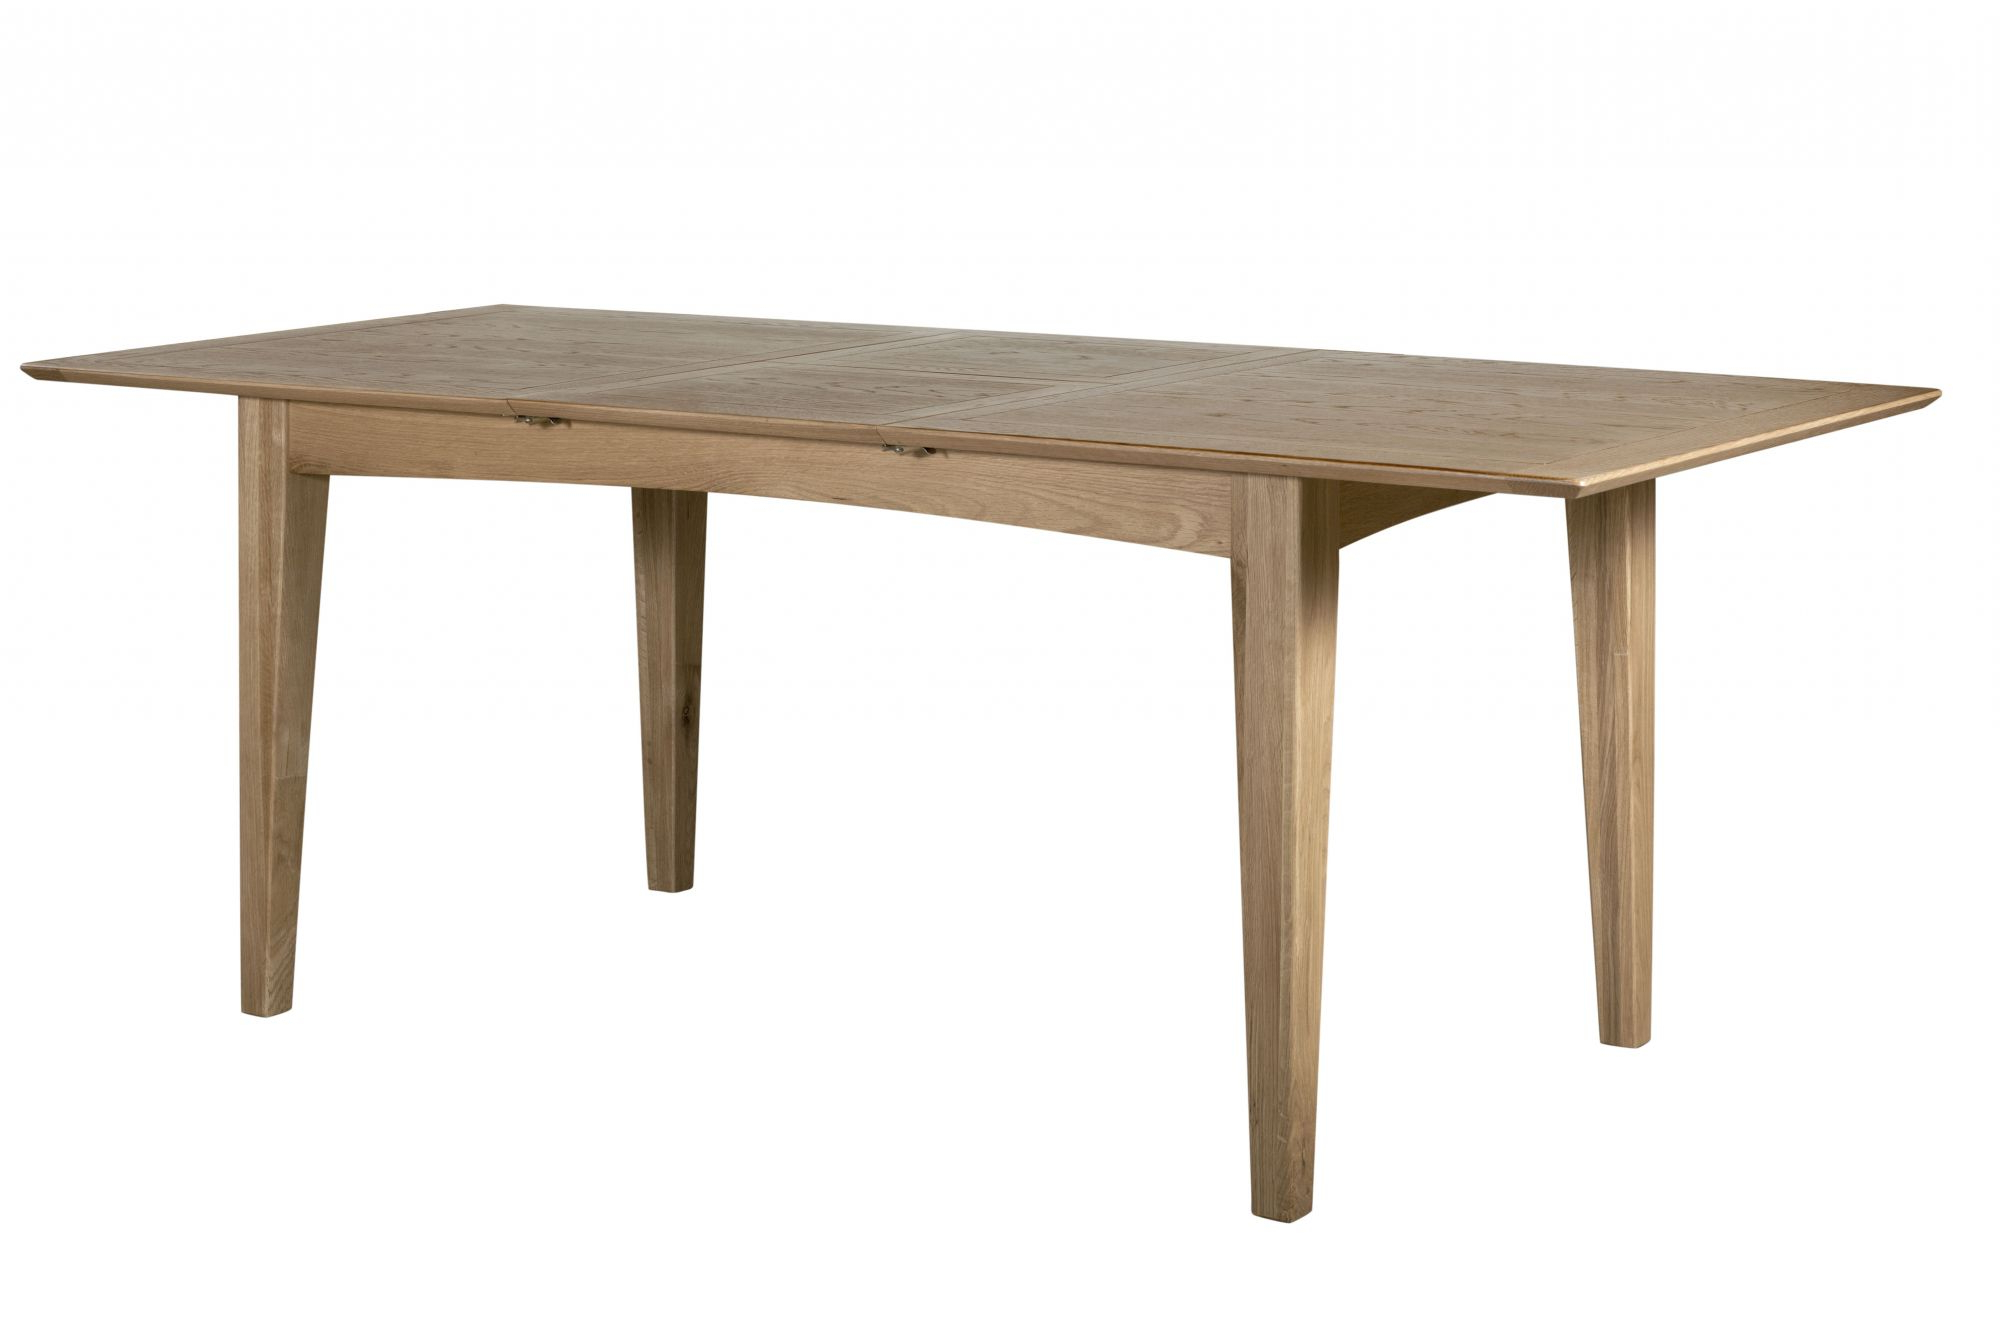 Langton Reclaimed Wood Dining Tables Intended For 2019 Eva Oak 2100 Extending Dining Table (View 21 of 25)